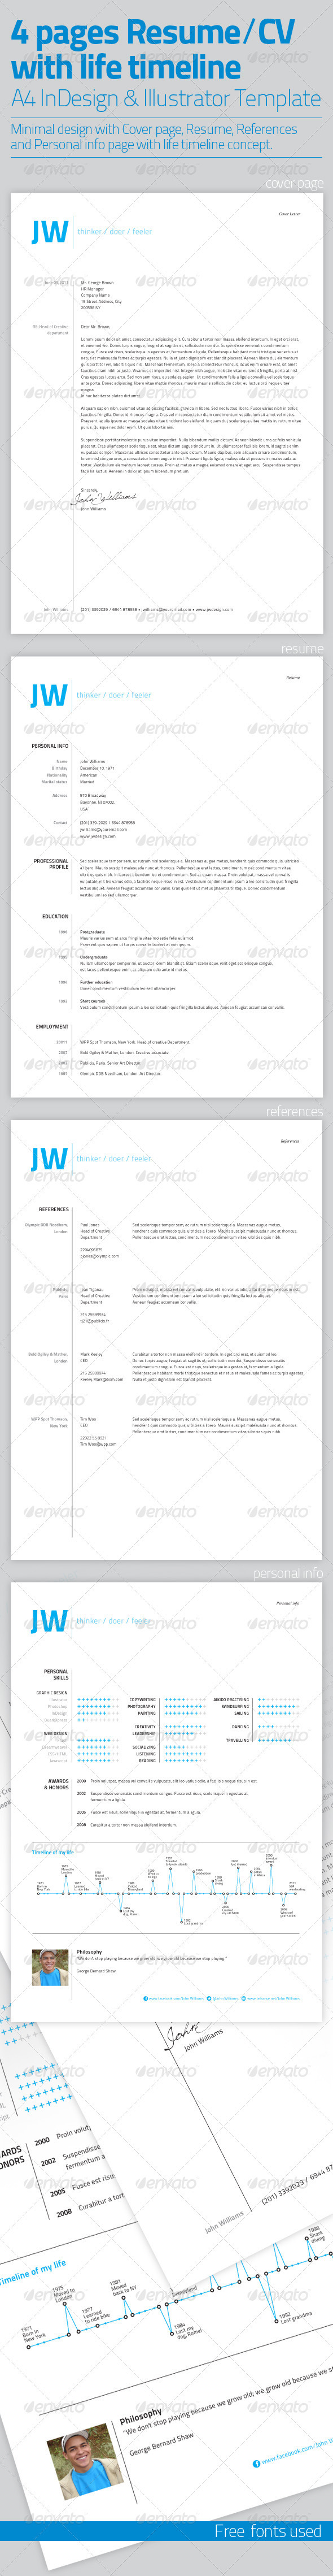 GraphicRiver Resume Template 4 Pages with Life Timeline 3076496